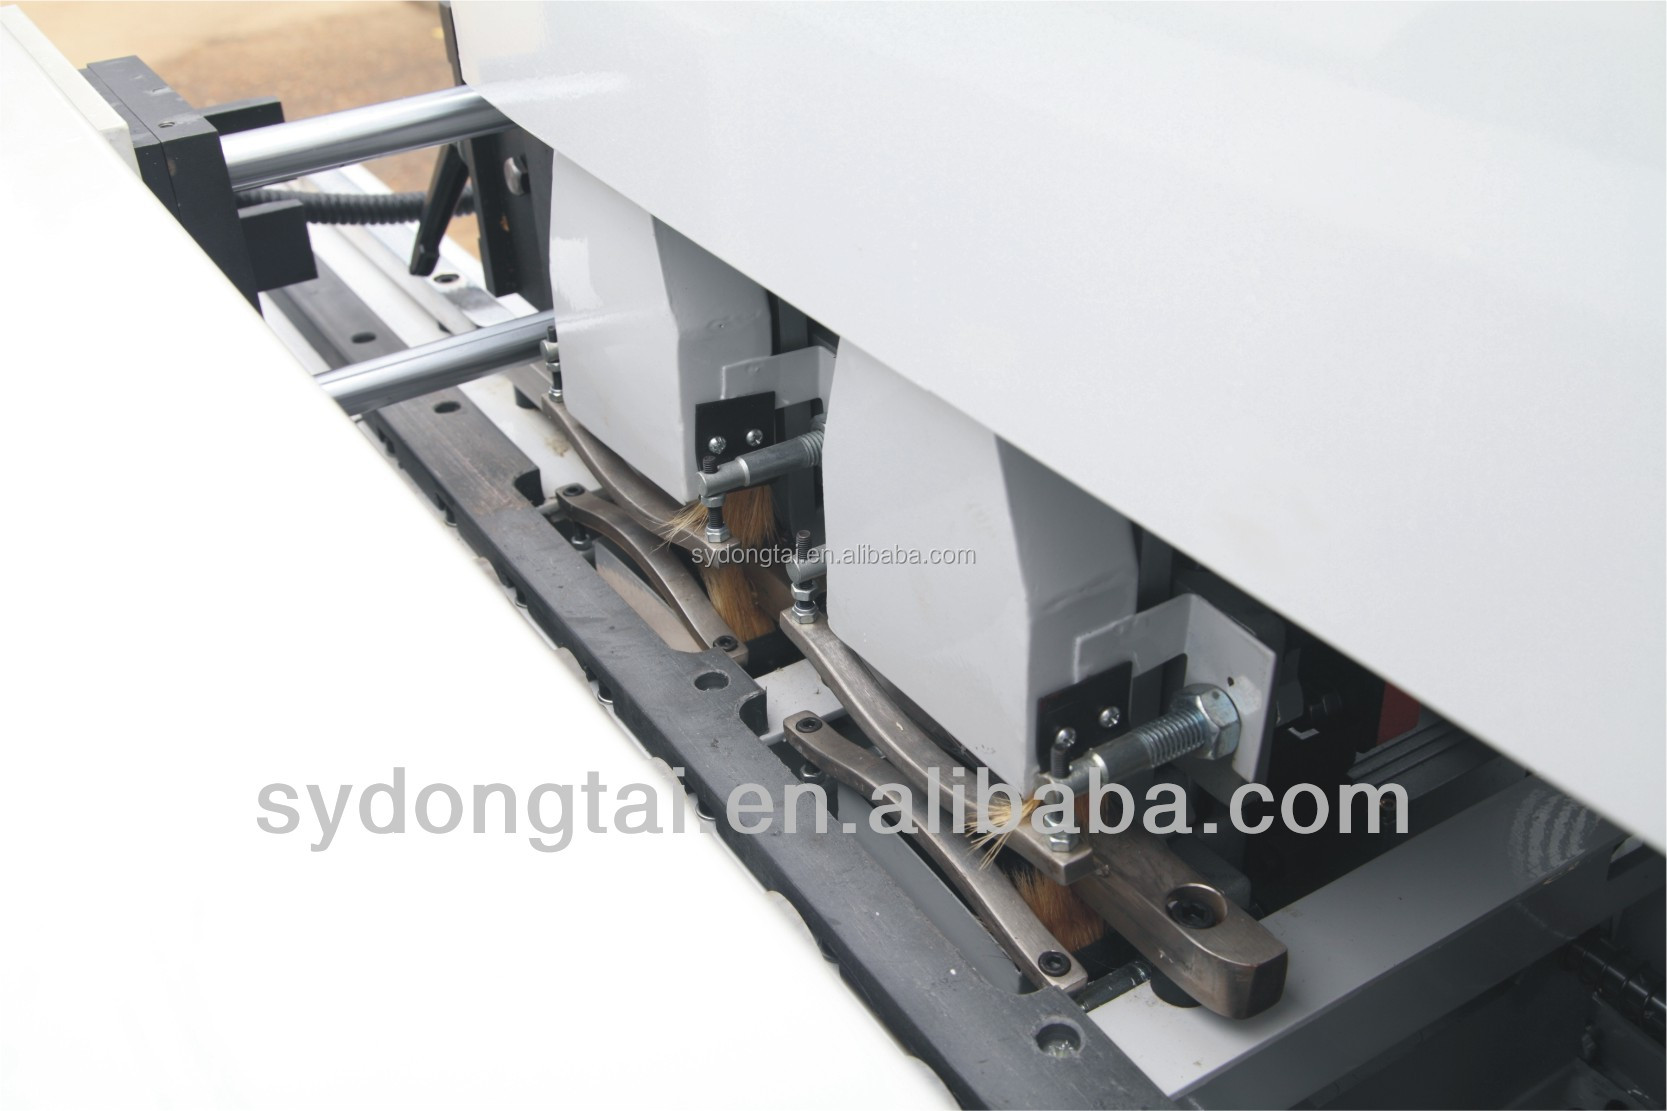 Shenyang city wood based panels machinery MFQZ45x3B automatic edge banding machine/woodworking machine